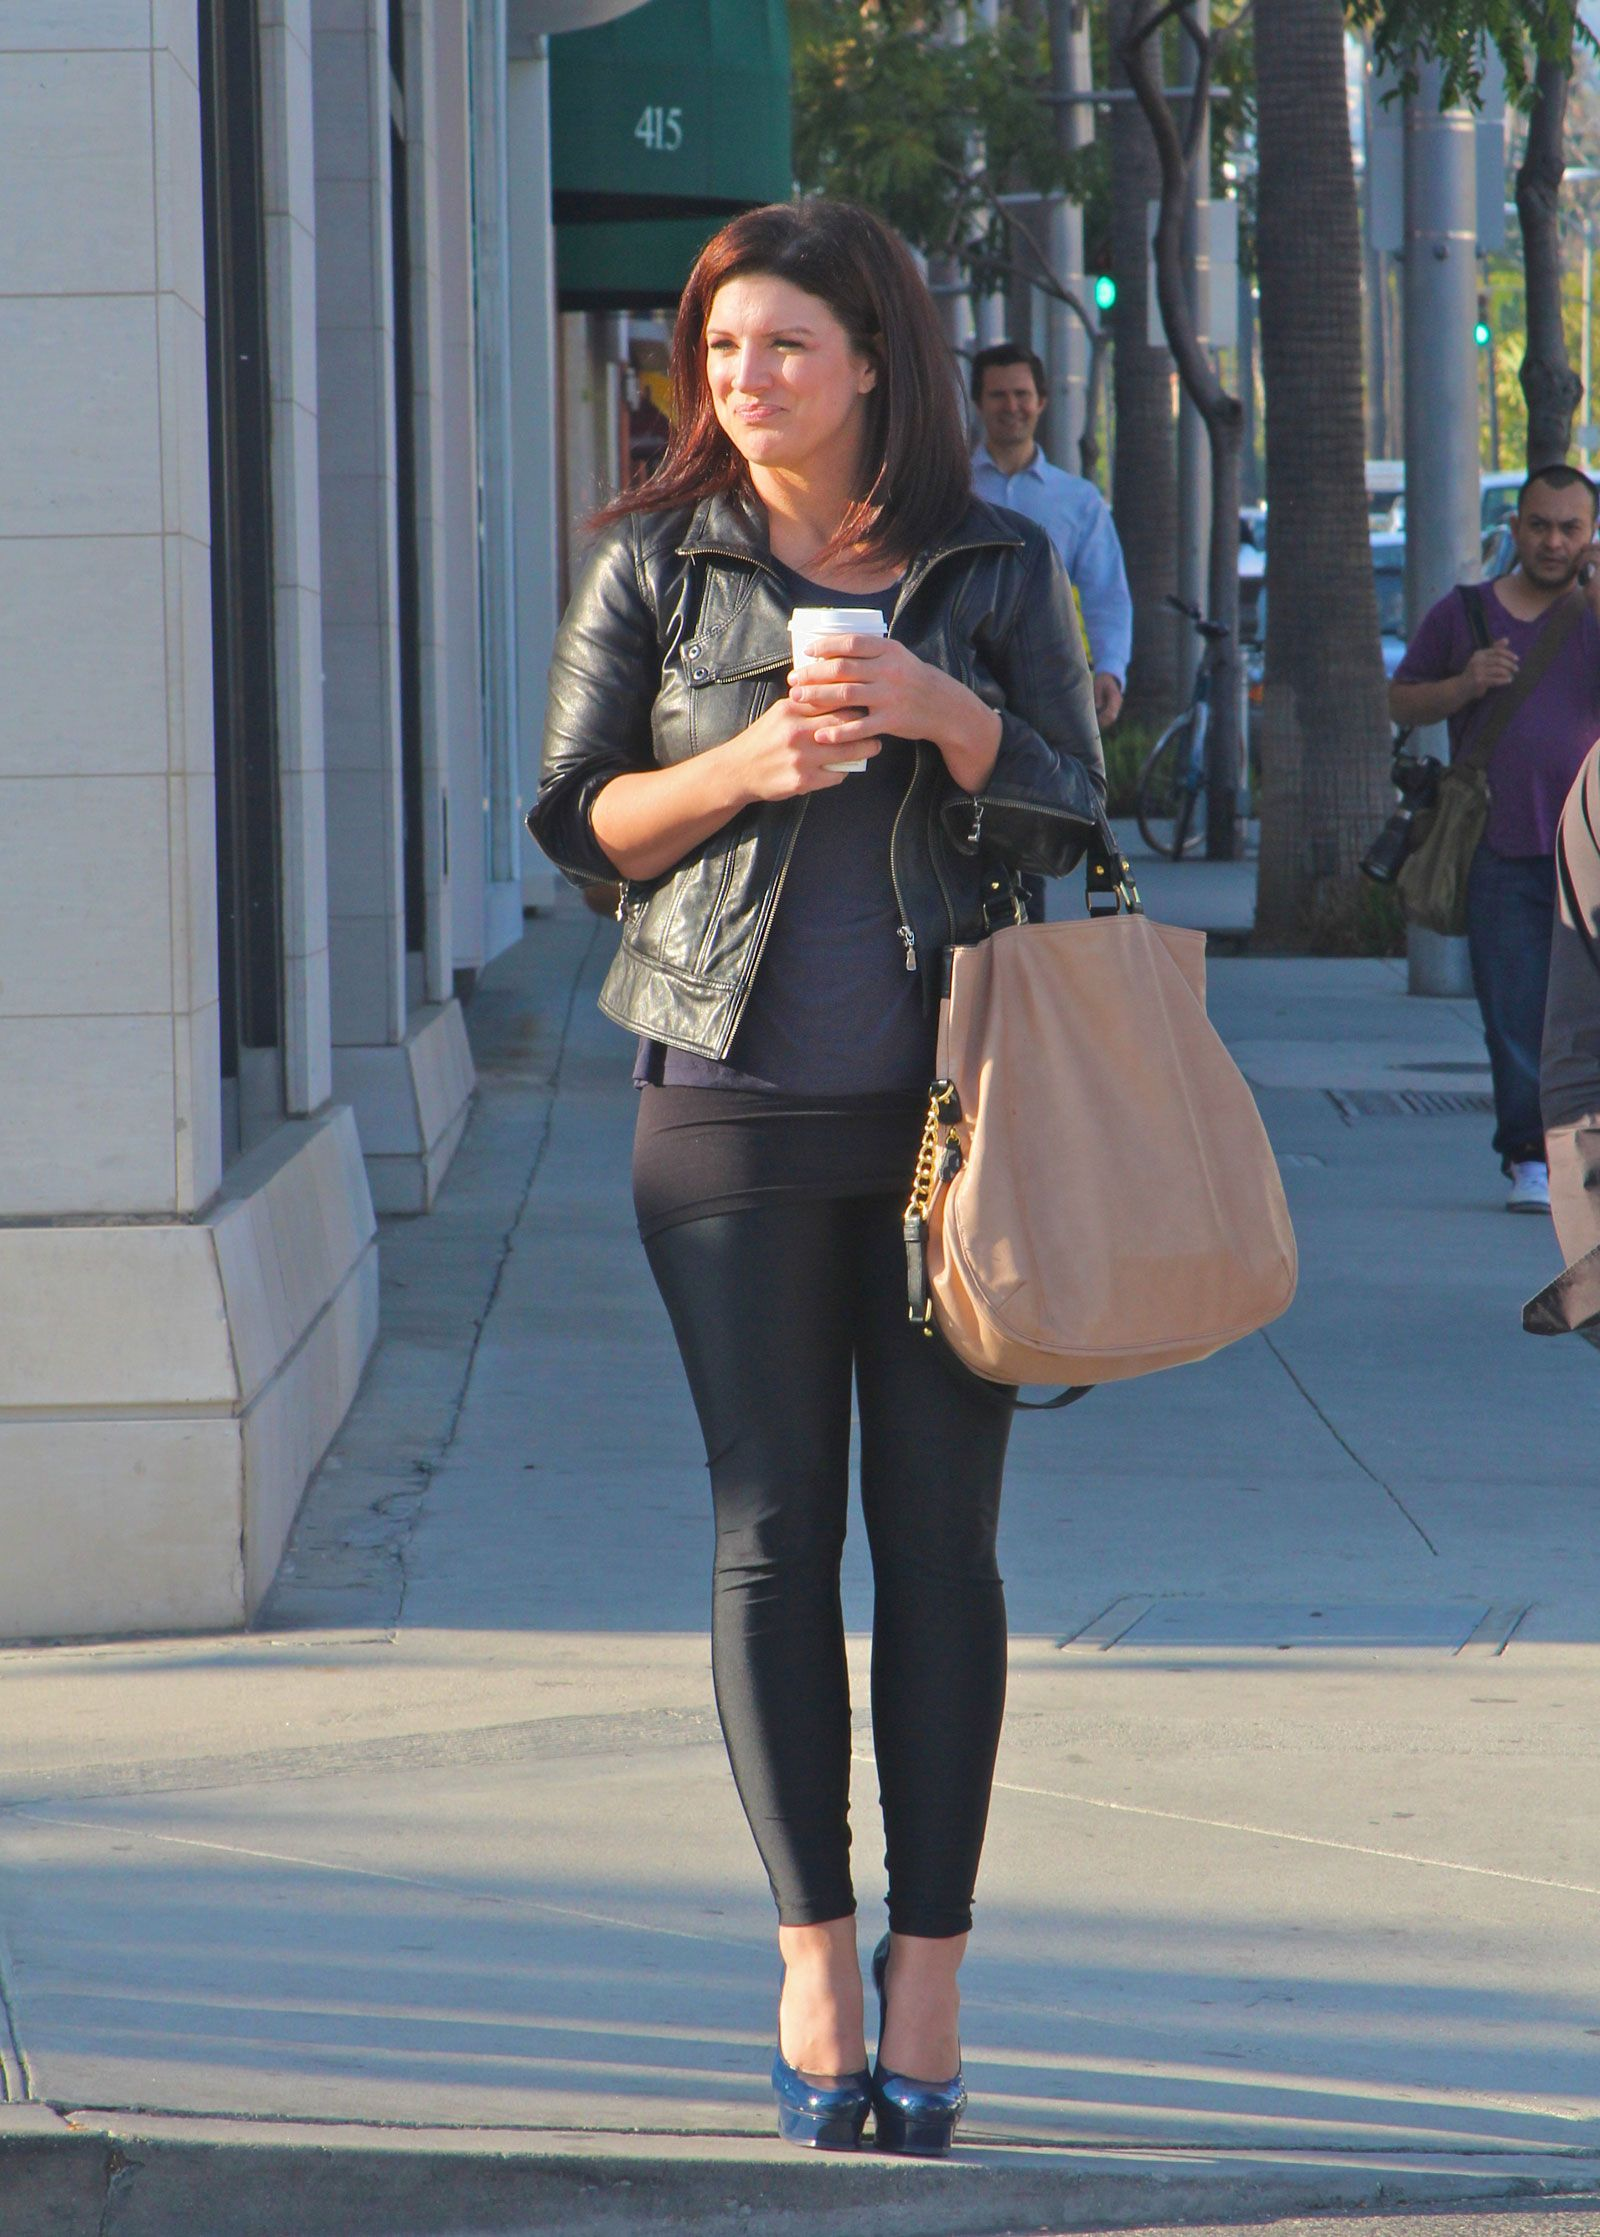 Gina carano diet plan and workout routine healthy celeb - Gina Carano